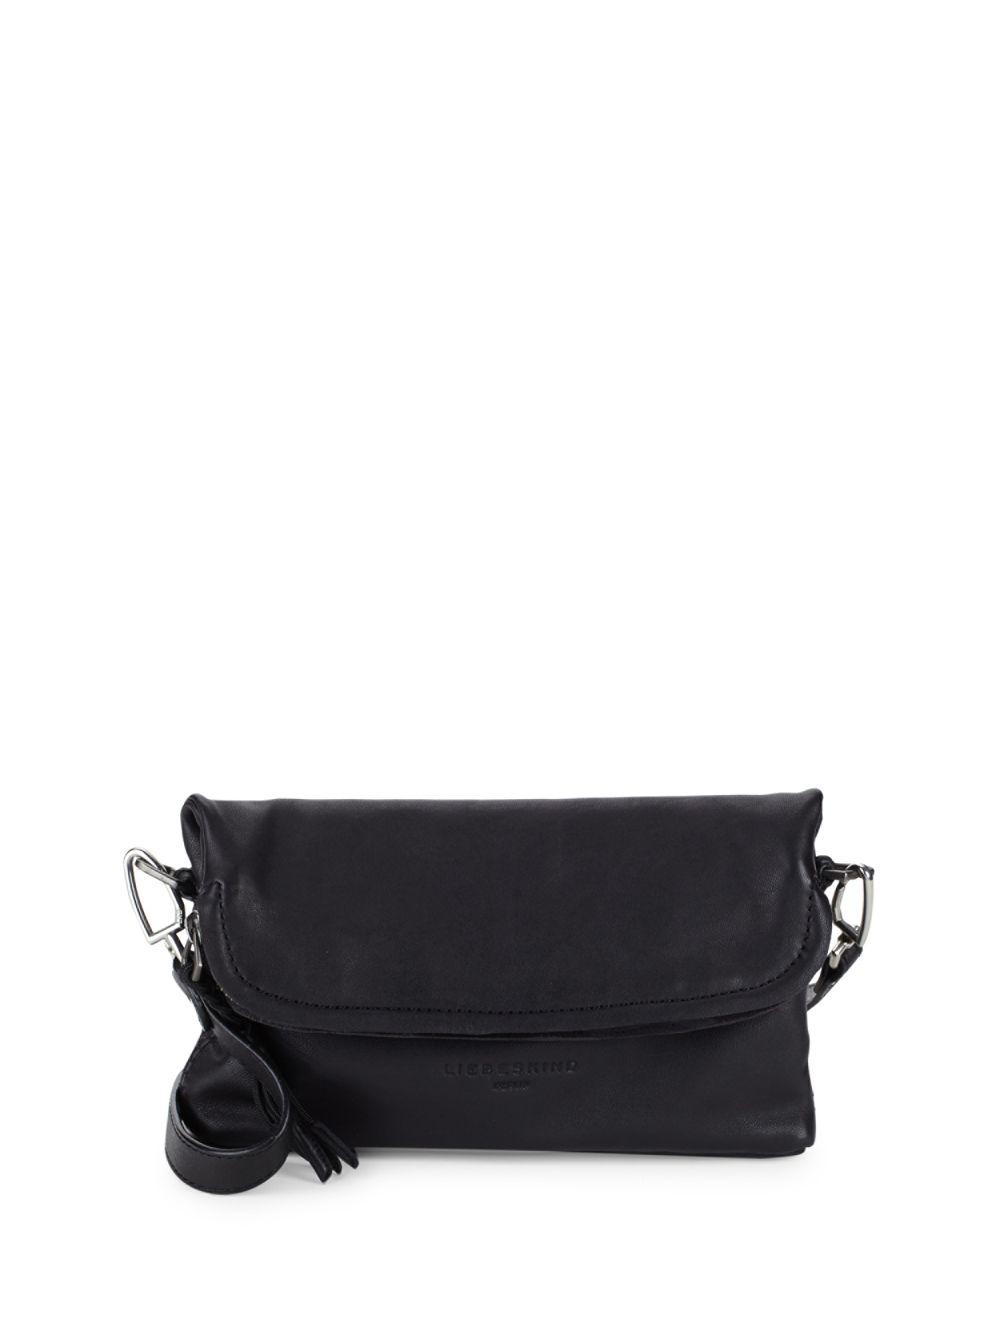 514f98f9e544 Lyst - Liebeskind Berlin Leather Shoulder Bag in Black